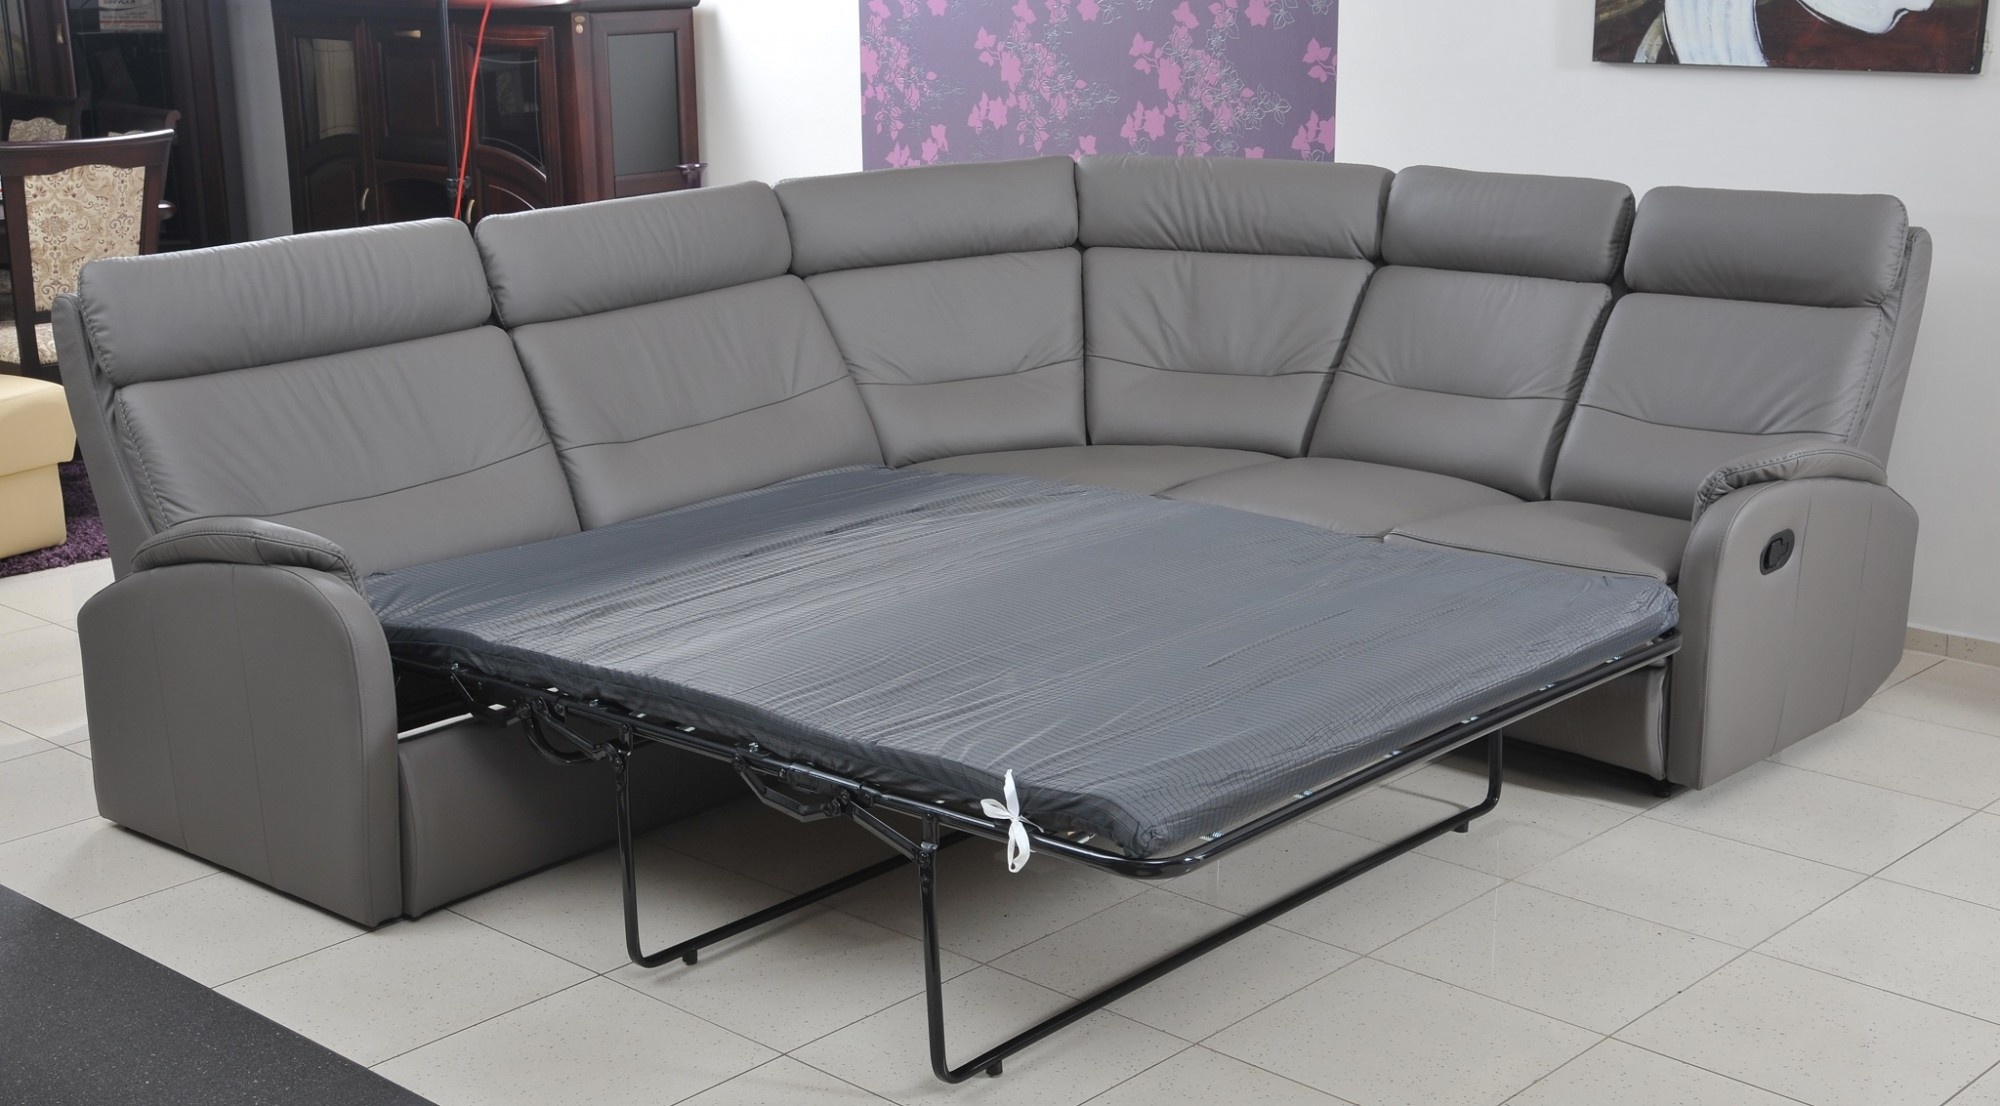 Caro leather corner sofa bed extended